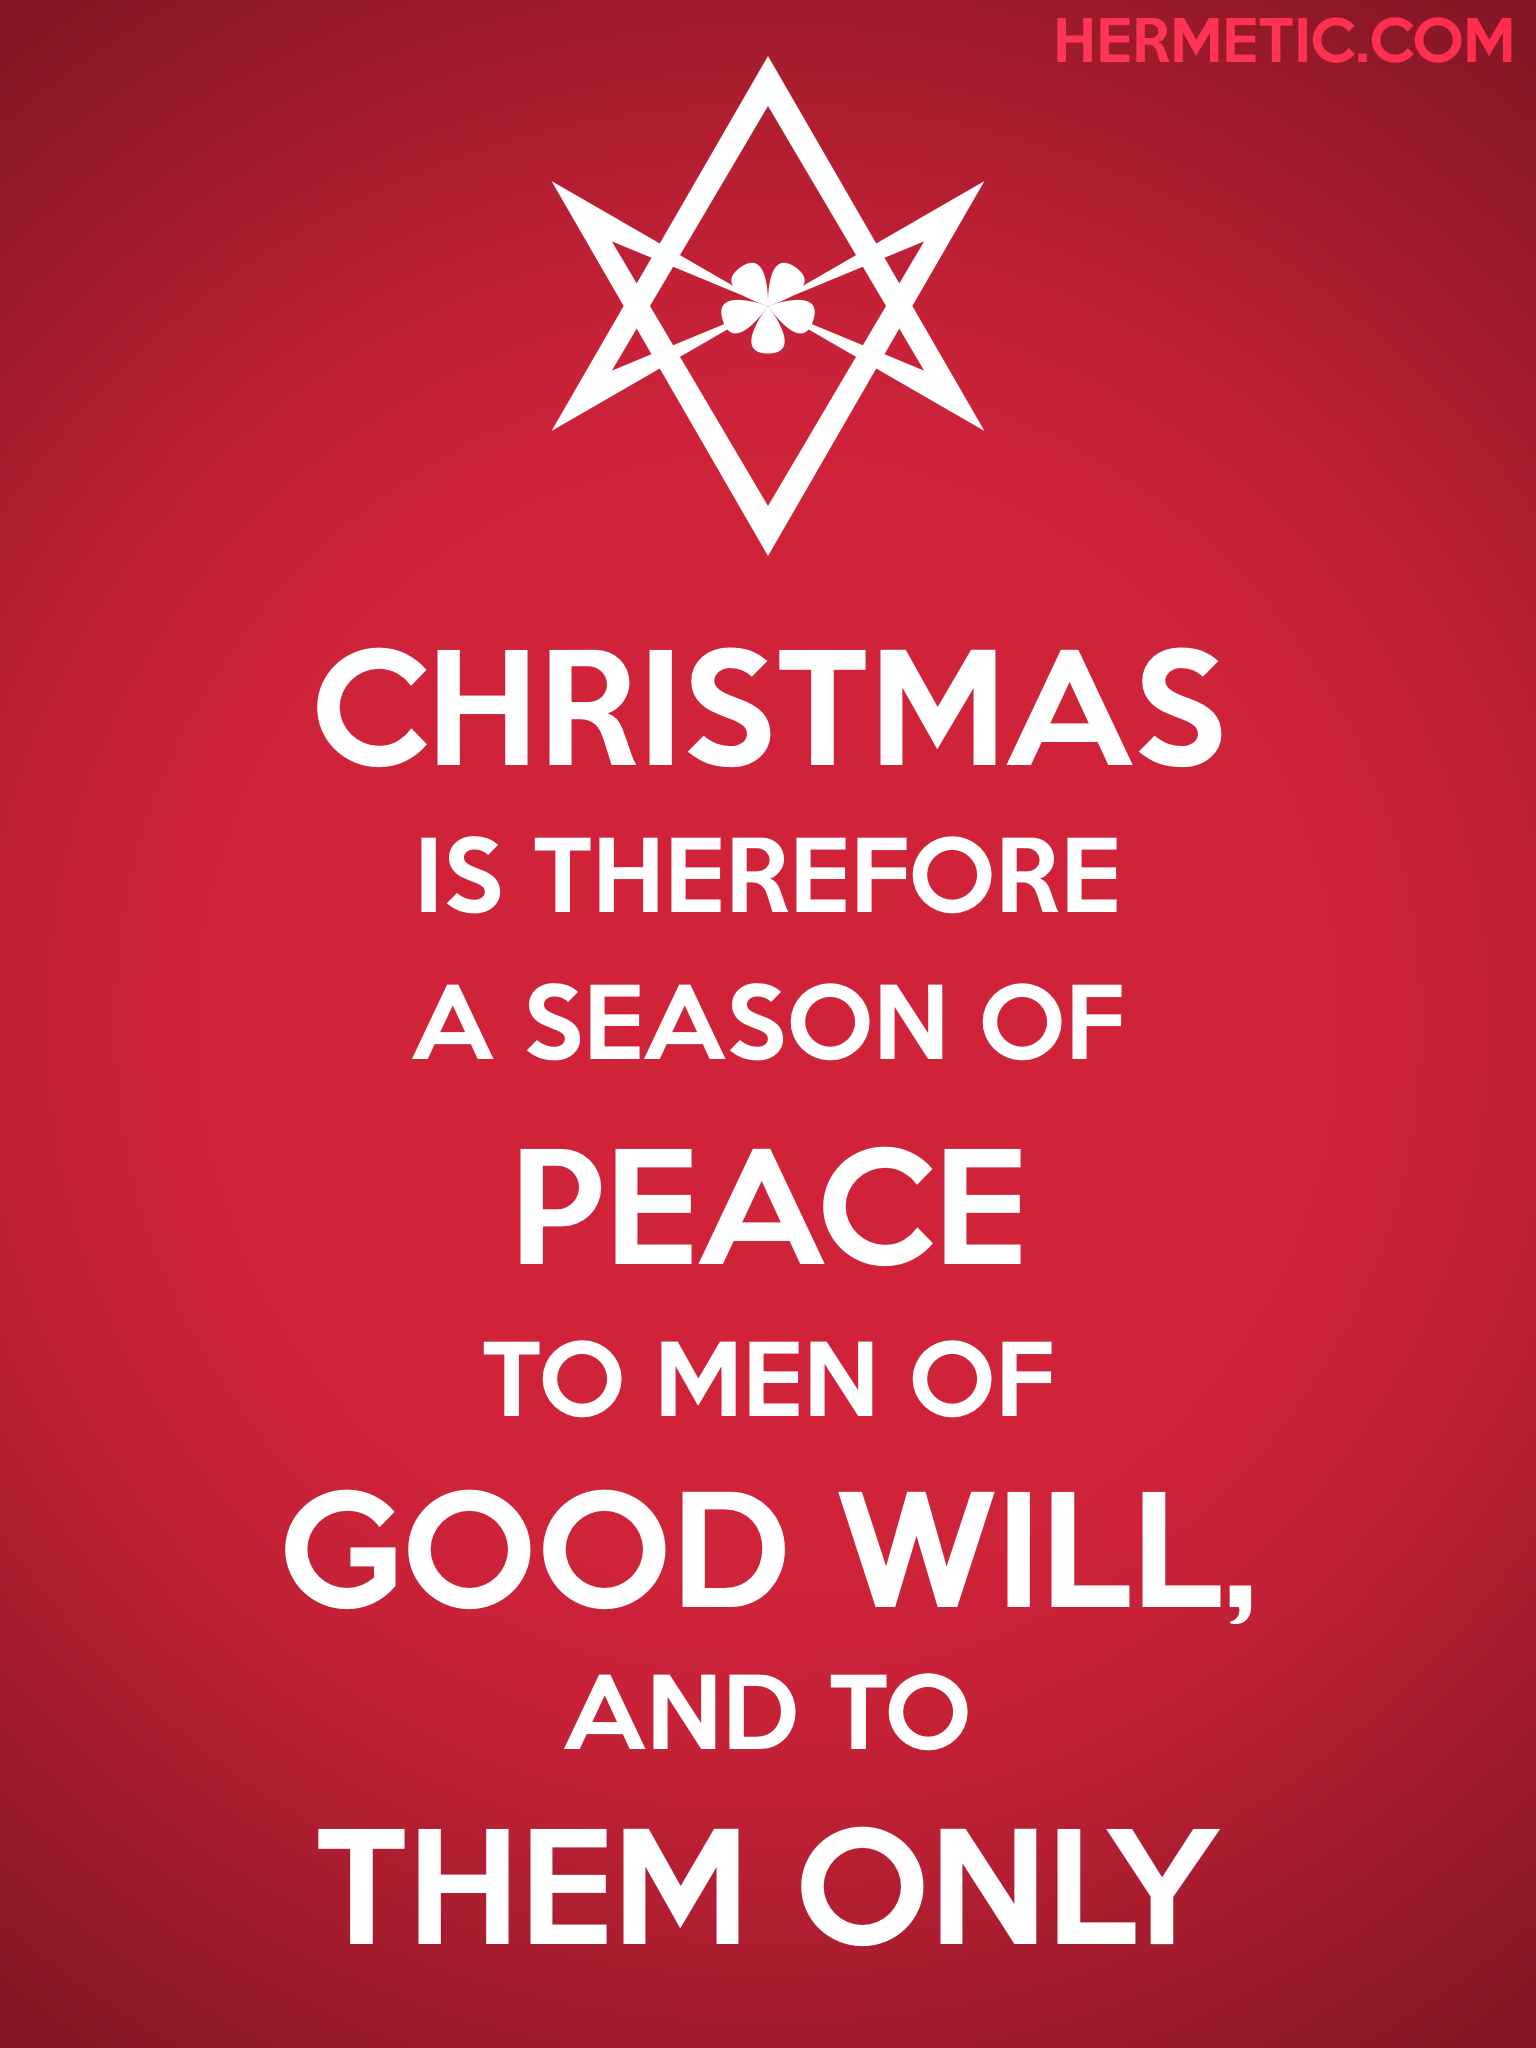 Unicursal CHRISTMAS GOOD WILL Propaganda Poster from Hermetic Library Office of the Ministry of Information